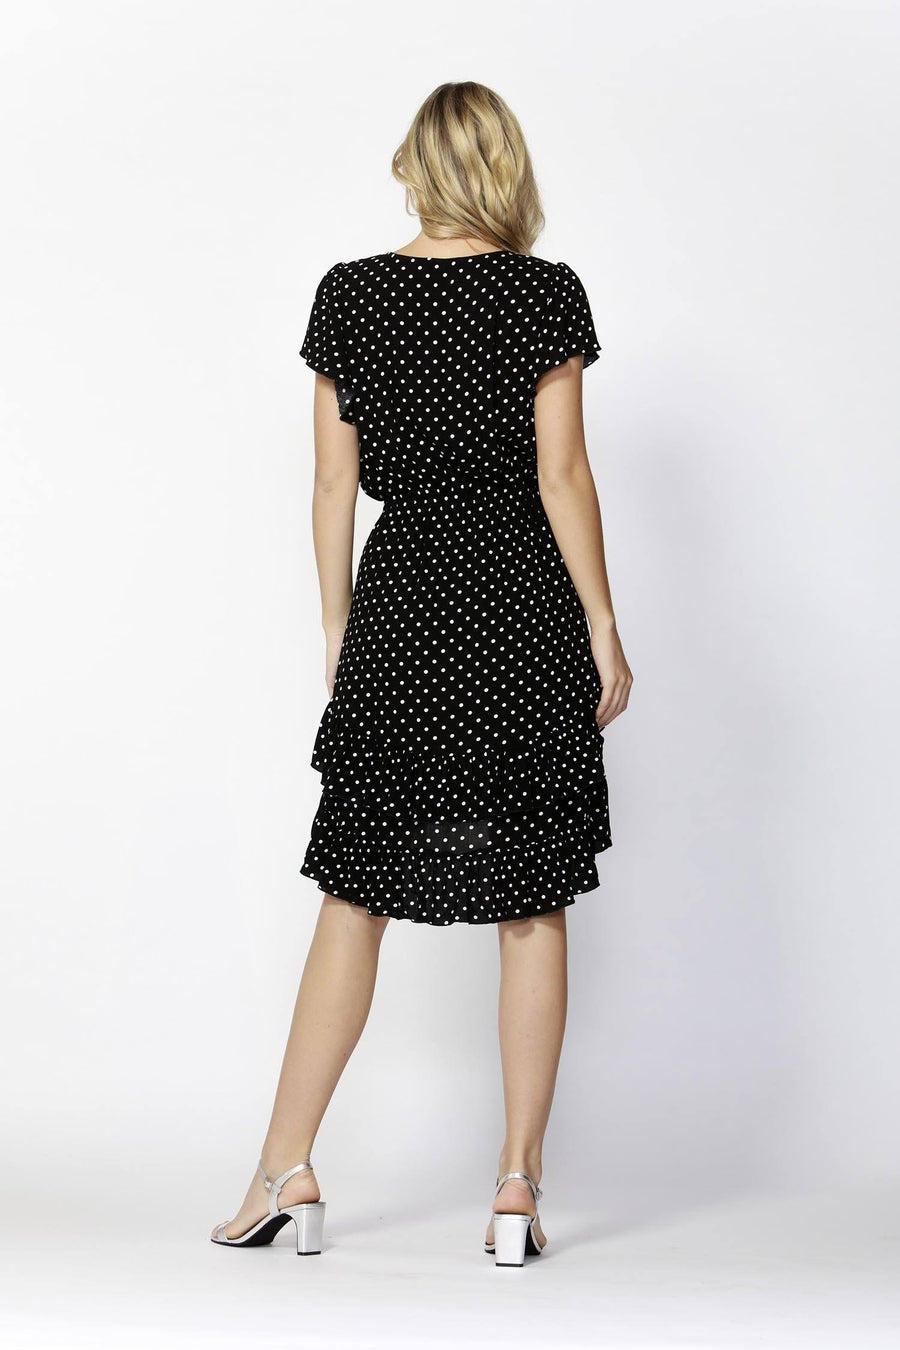 Sunny Day Frilly Dress in Black/White Dots